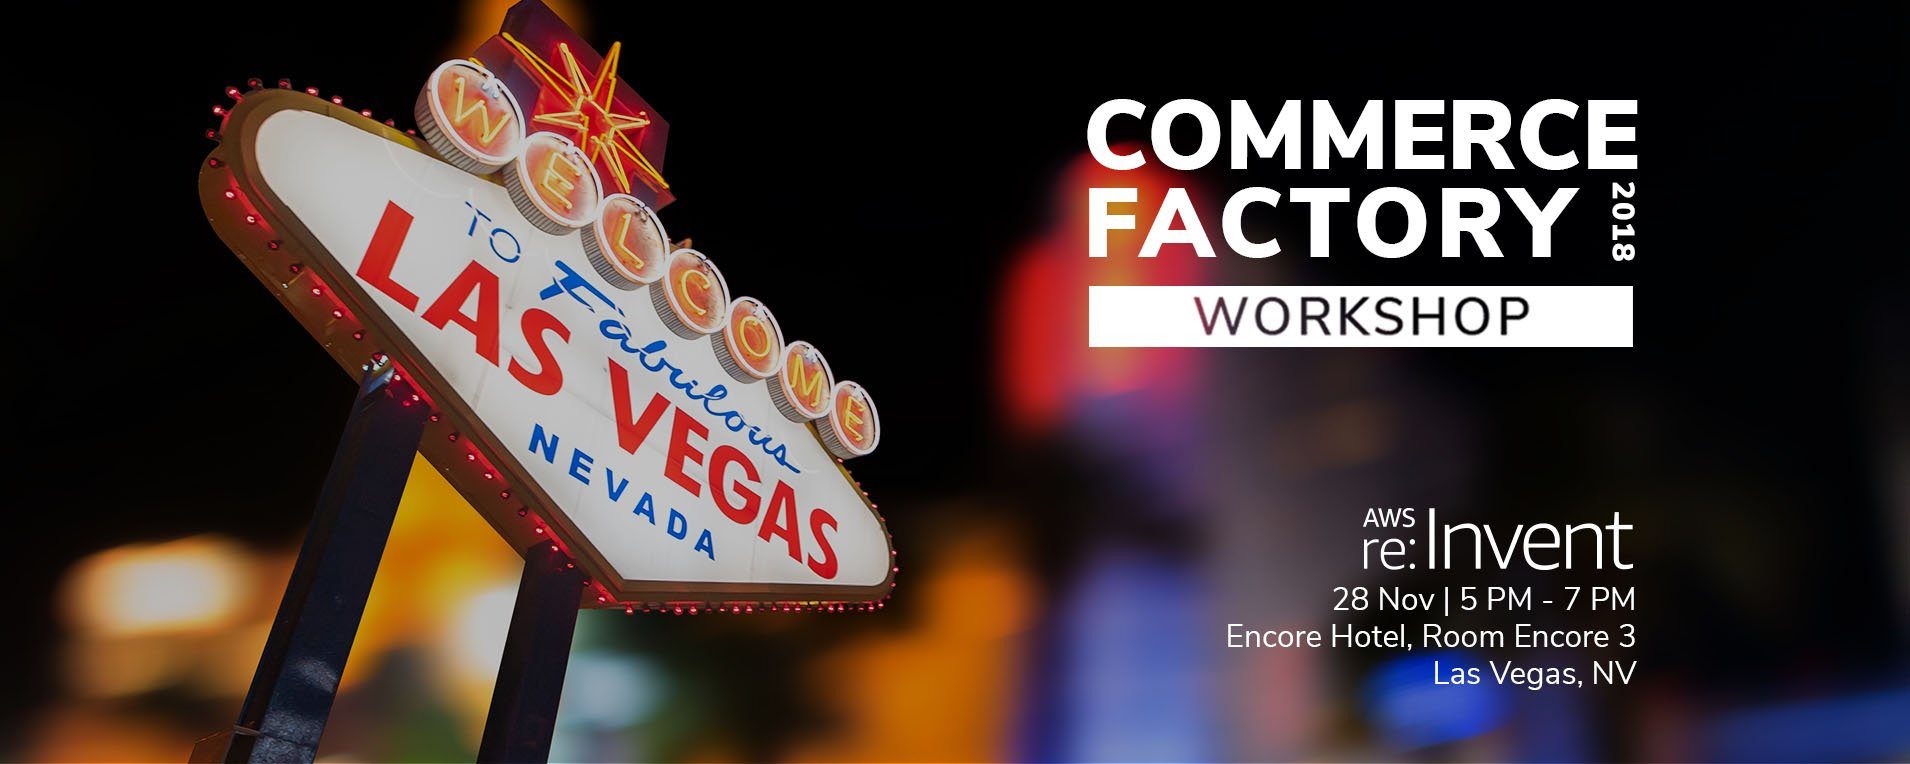 Unlock the Path to Experiential Commerce at AWS re:Invent 2018